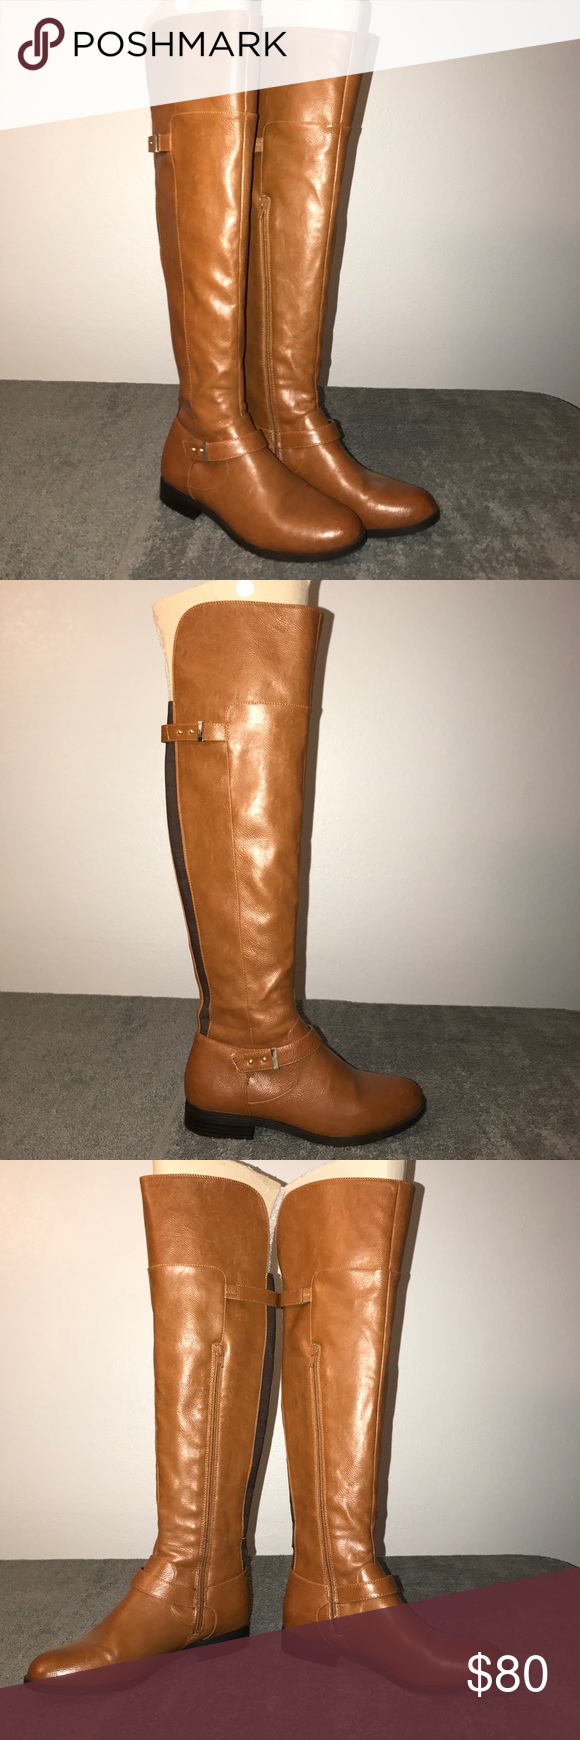 0f62ae40bb7 Bar III Daphne Banana Bread Over the Knee Boots Brand New without box. Bar  III Shoes Over the Knee Boots